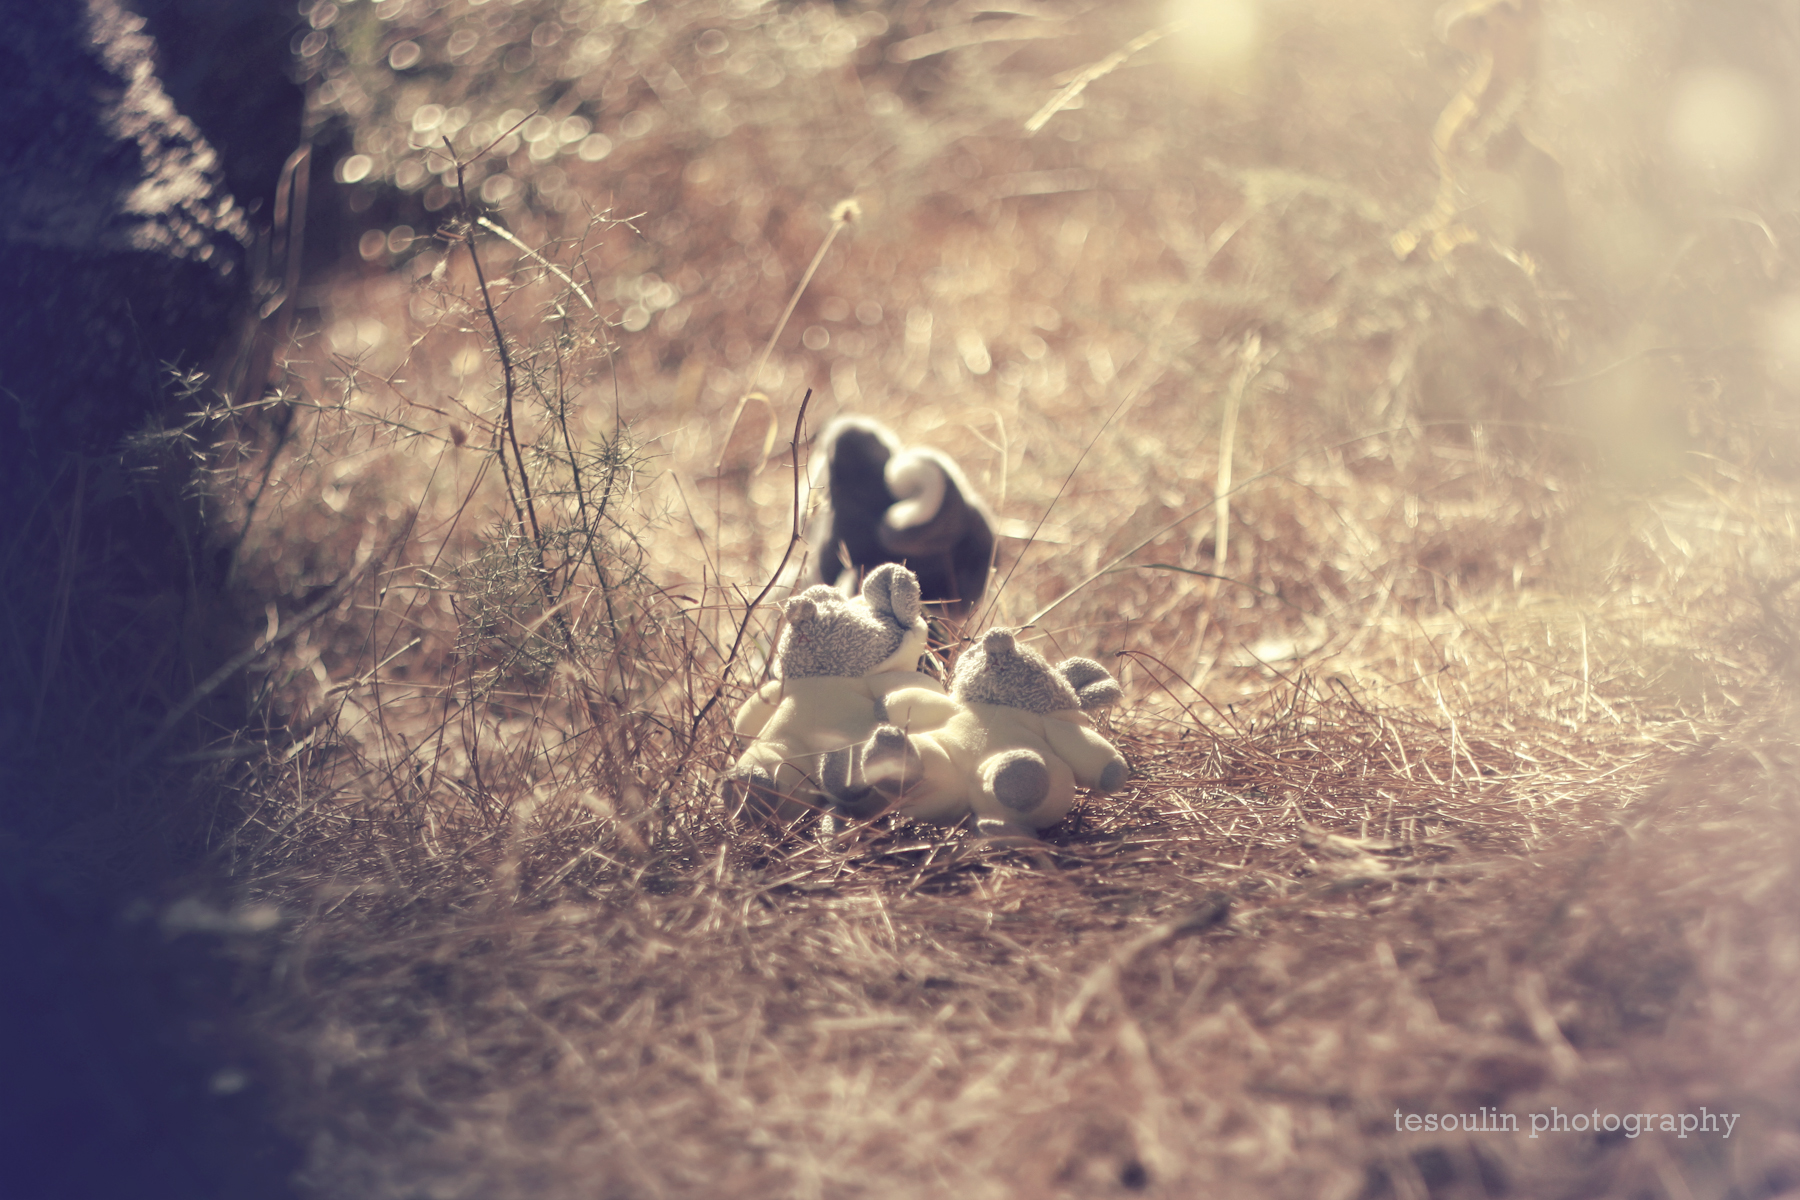 childhood nostalgia - tesoulin photography